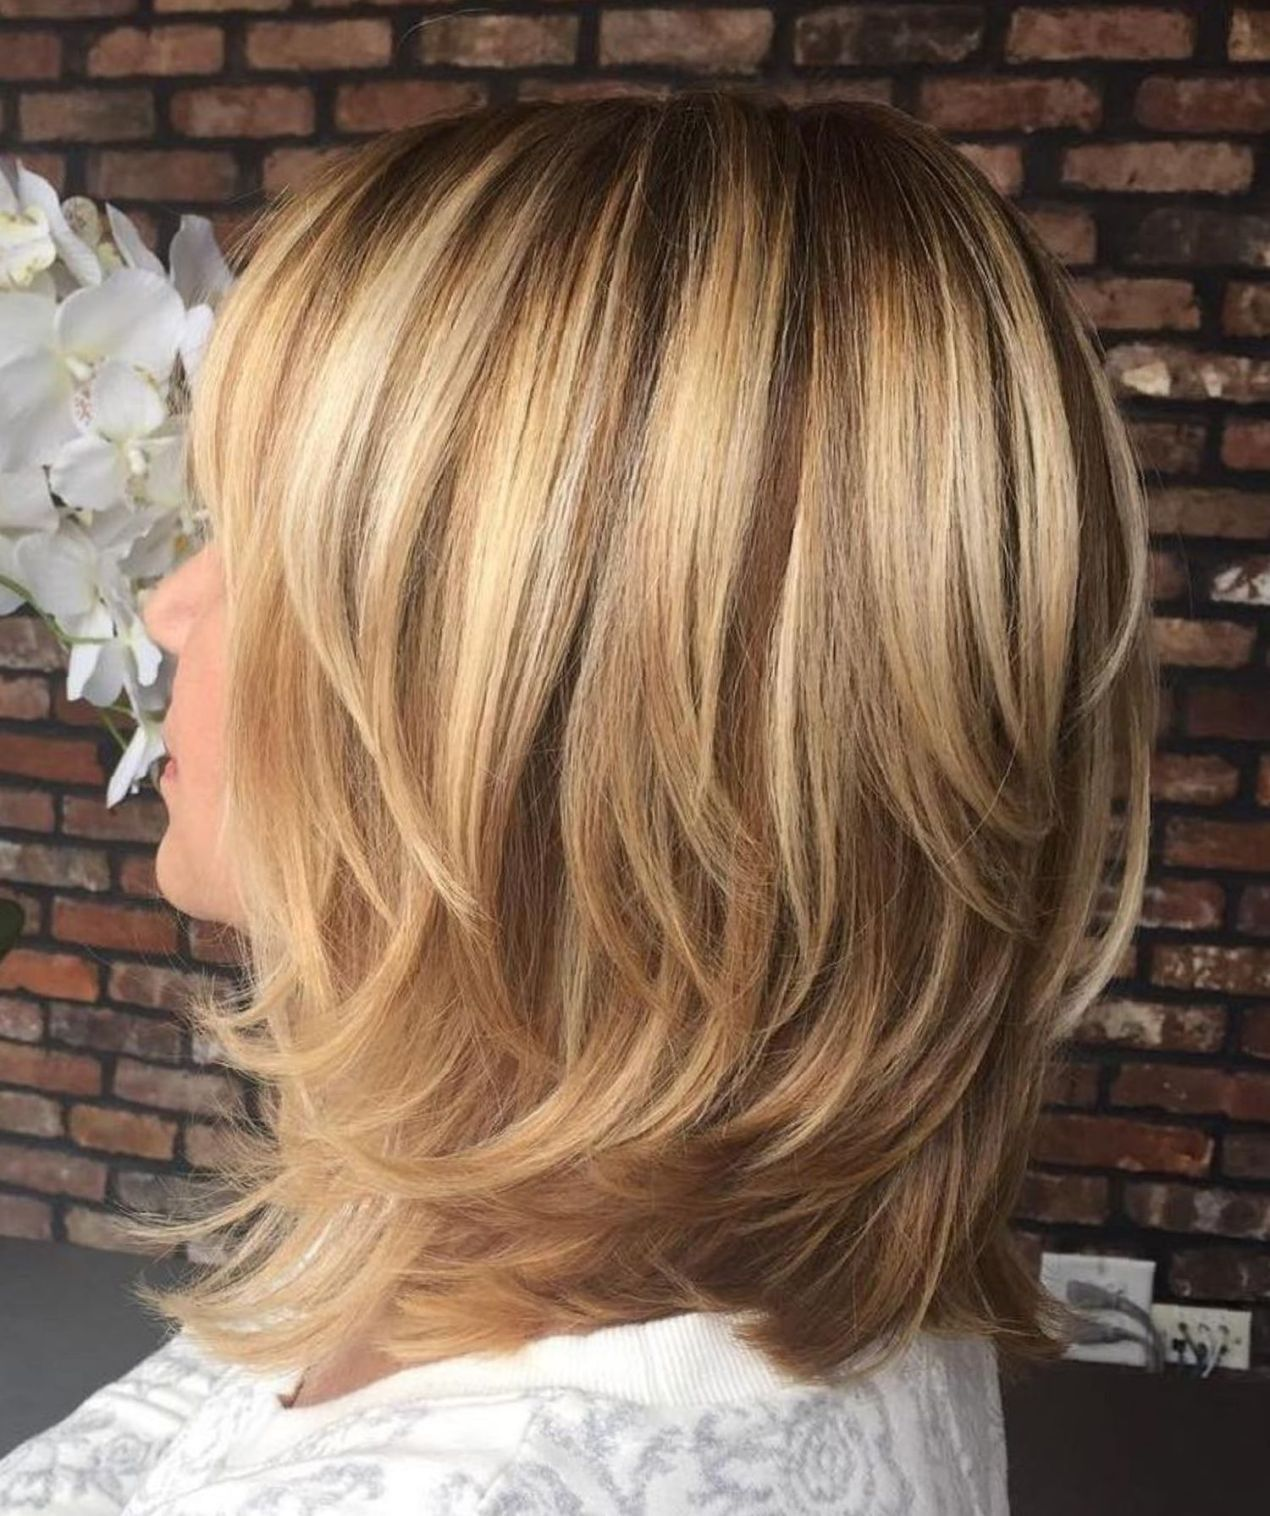 60 Fun And Flattering Medium Hairstyles For Women In 2019 Hair Cut